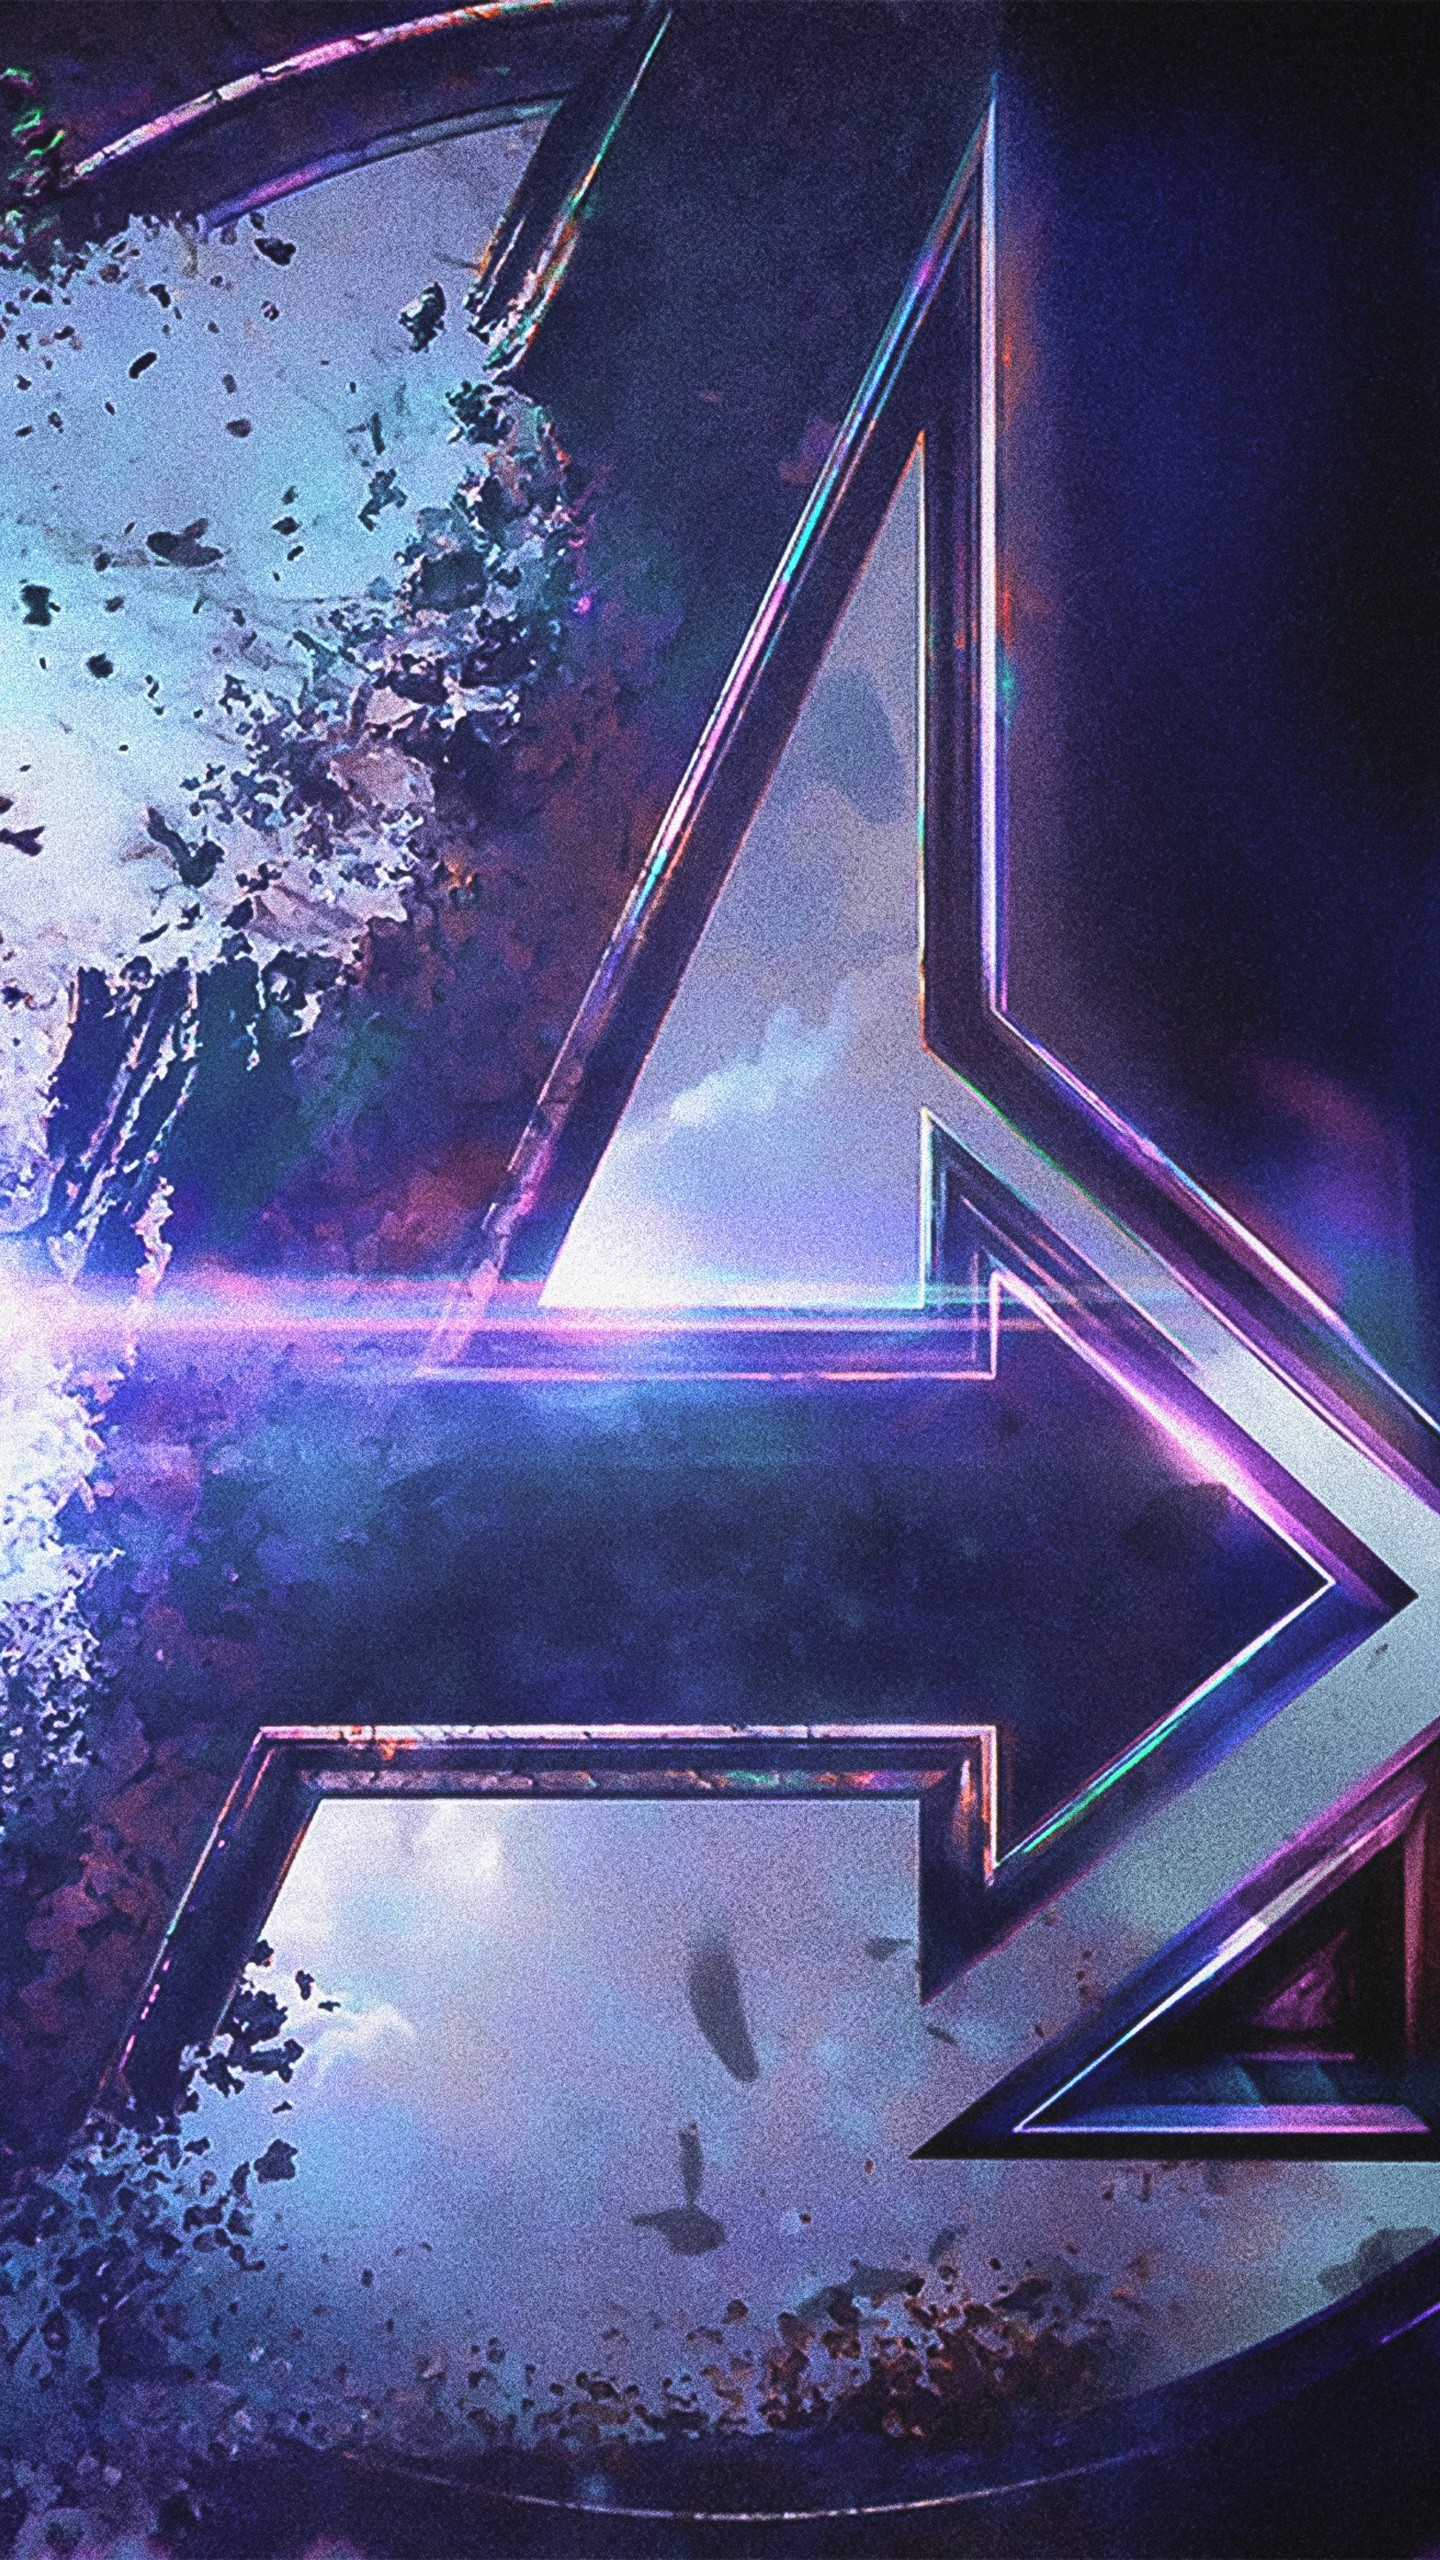 Oled Wallpaper Iphone X Avengers Endgame 4k Wallpapers Hd Wallpapers Id 28047